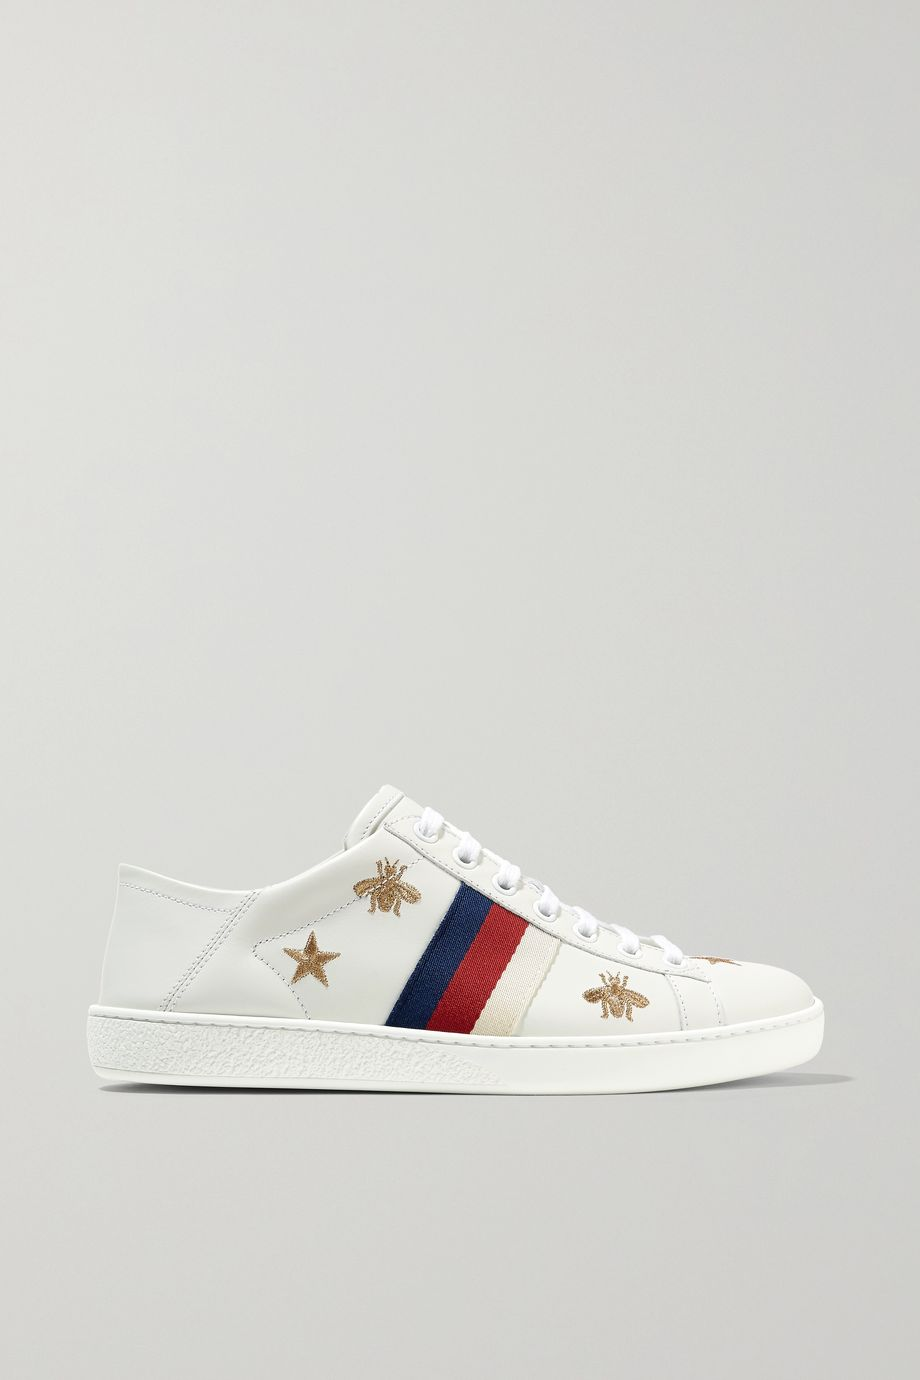 Ace embroidered leather collapsible-heel sneakers by Gucci, available on net-a-porter.com for $730 Alessandra Ambrosio Shoes Exact Product